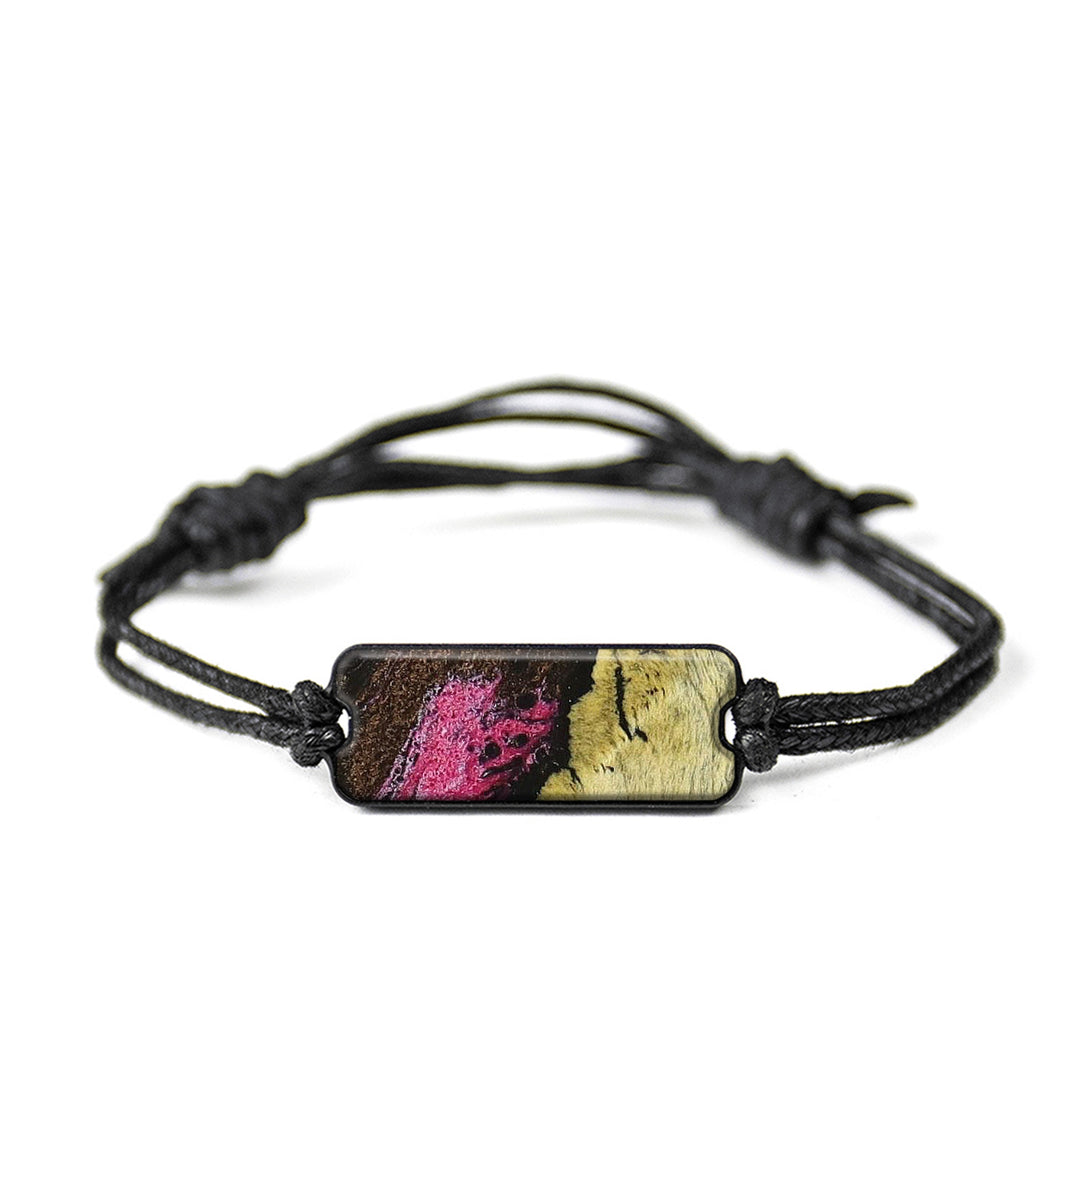 Classic Wood+Resin Bracelet - Corkstown (Pink, 348603)